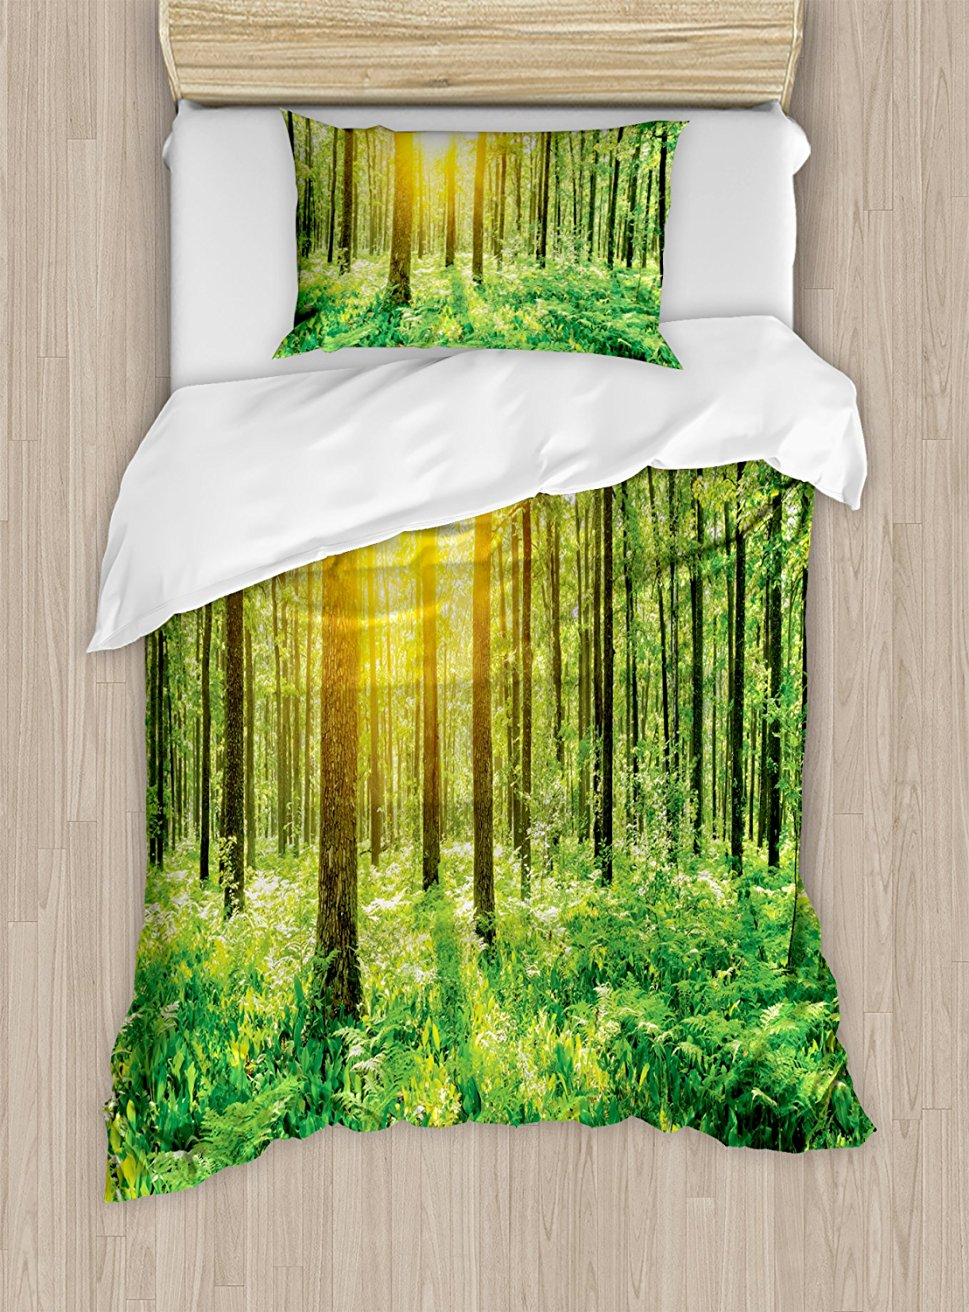 Woodland Duvet Cover Set Forest Springtime Freshness Theme